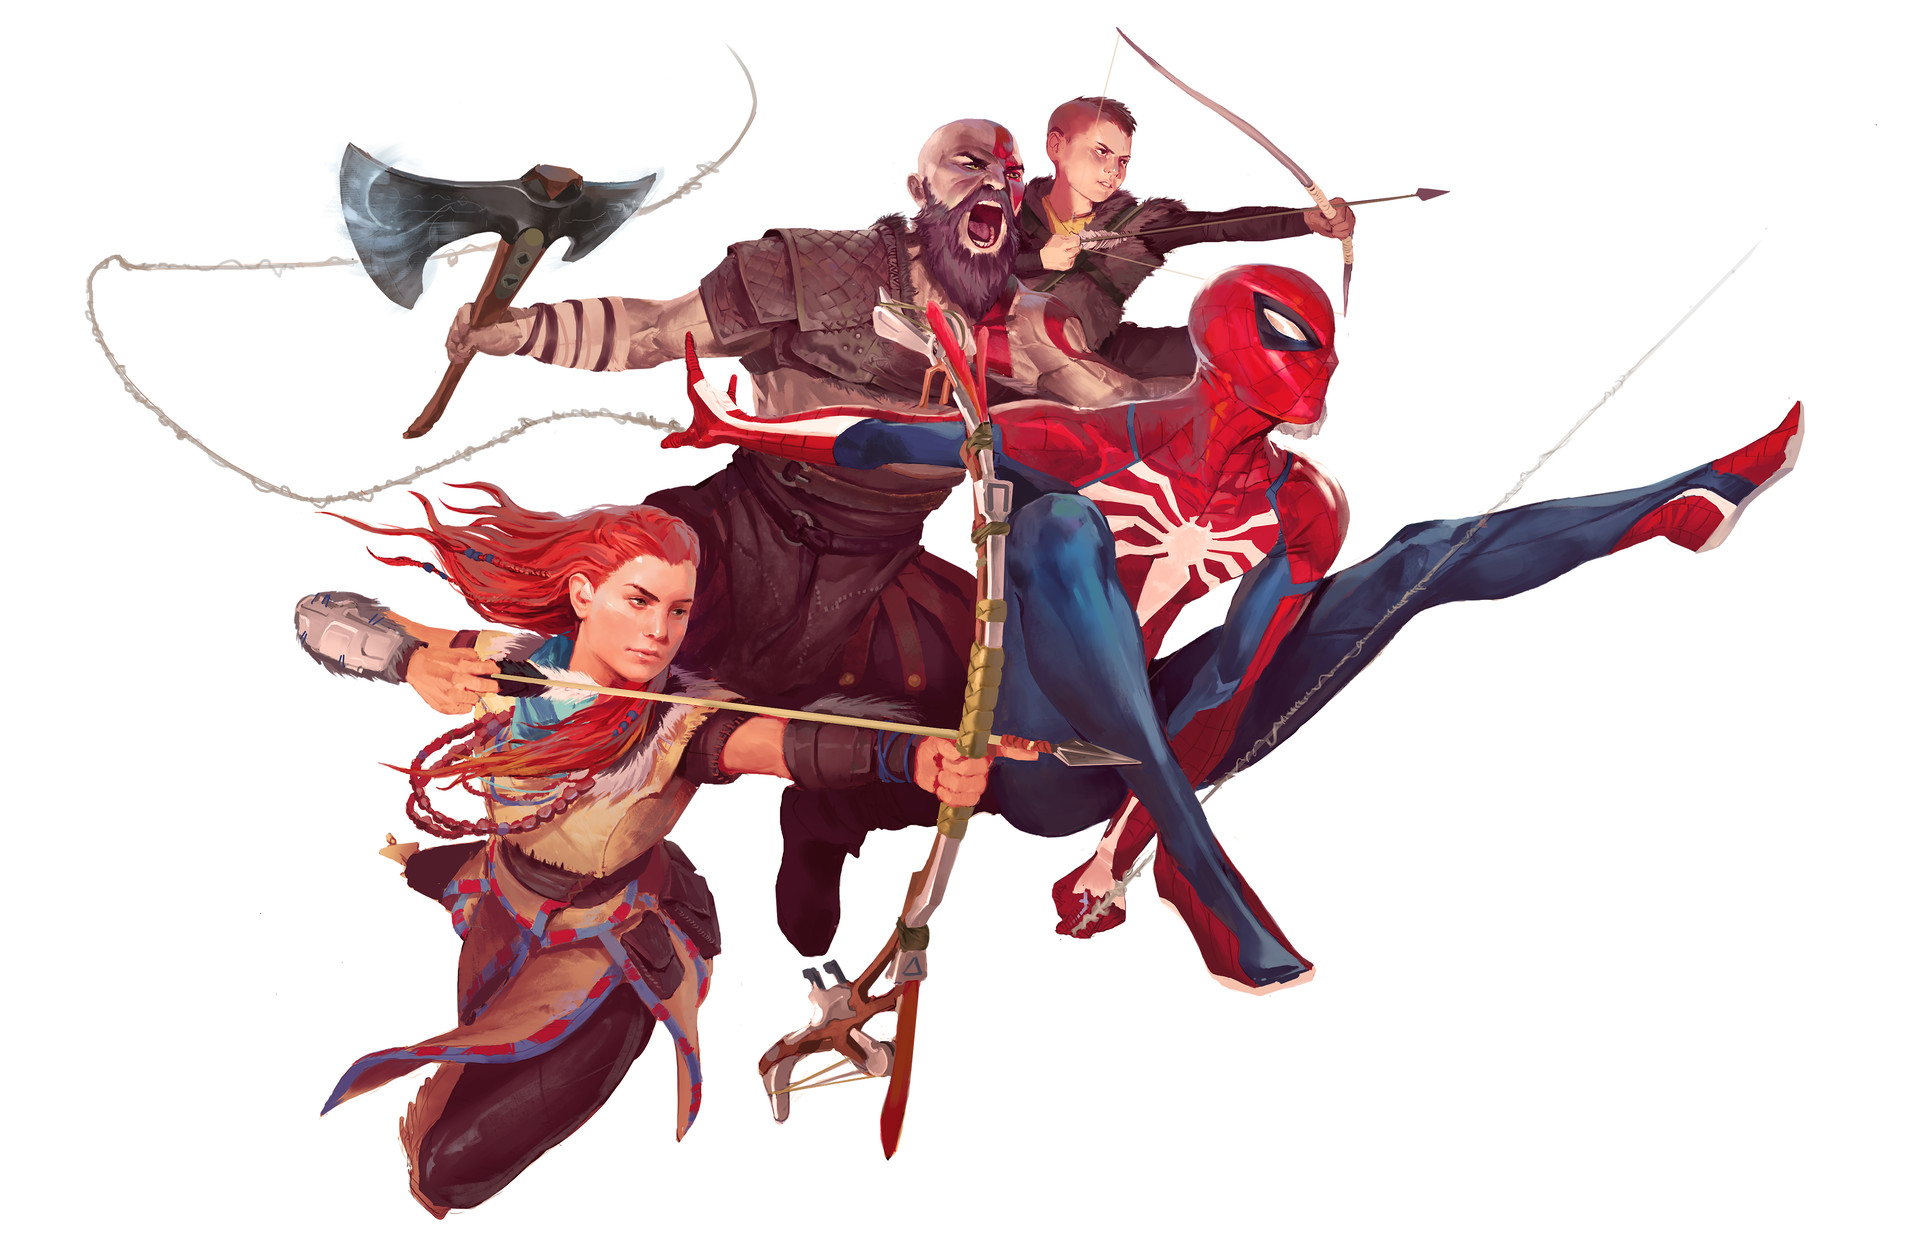 General 1920x1238 God of War God of War (2018) Spider-Man (2018) Spider-Man Horizon: Zero Dawn Kratos Aloy (Horizon: Zero Dawn) video games video game art artwork PlayStation 4